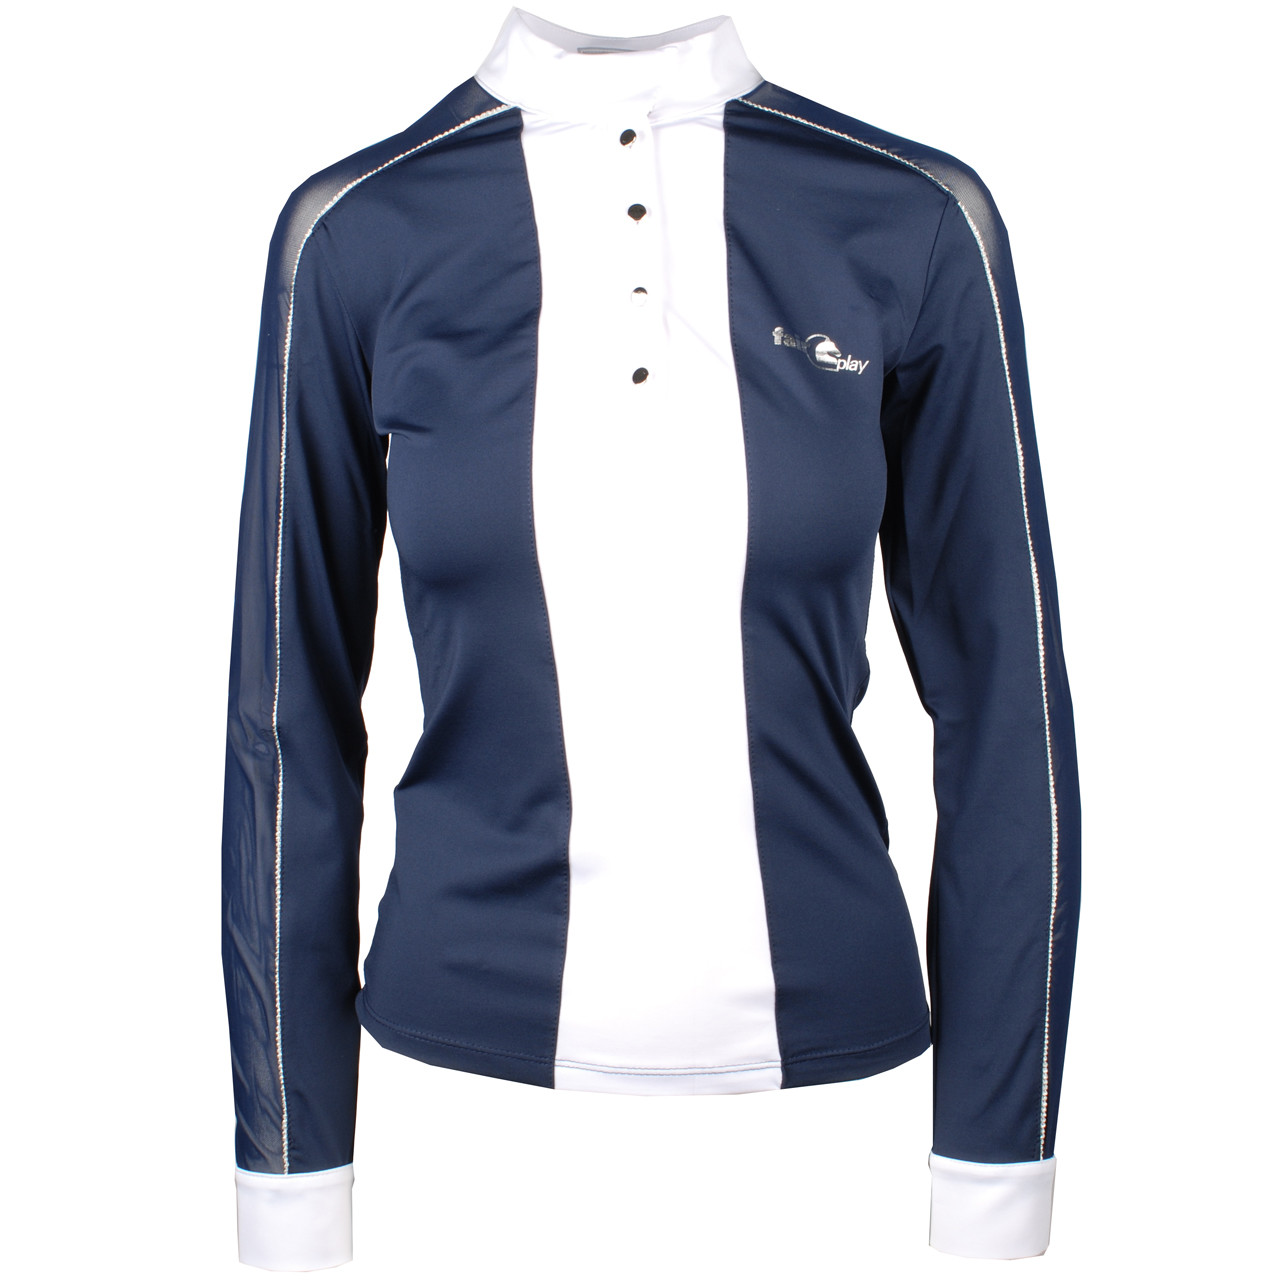 Fair Play Claire lm wedstrijdshirt donkerblauw maat:36